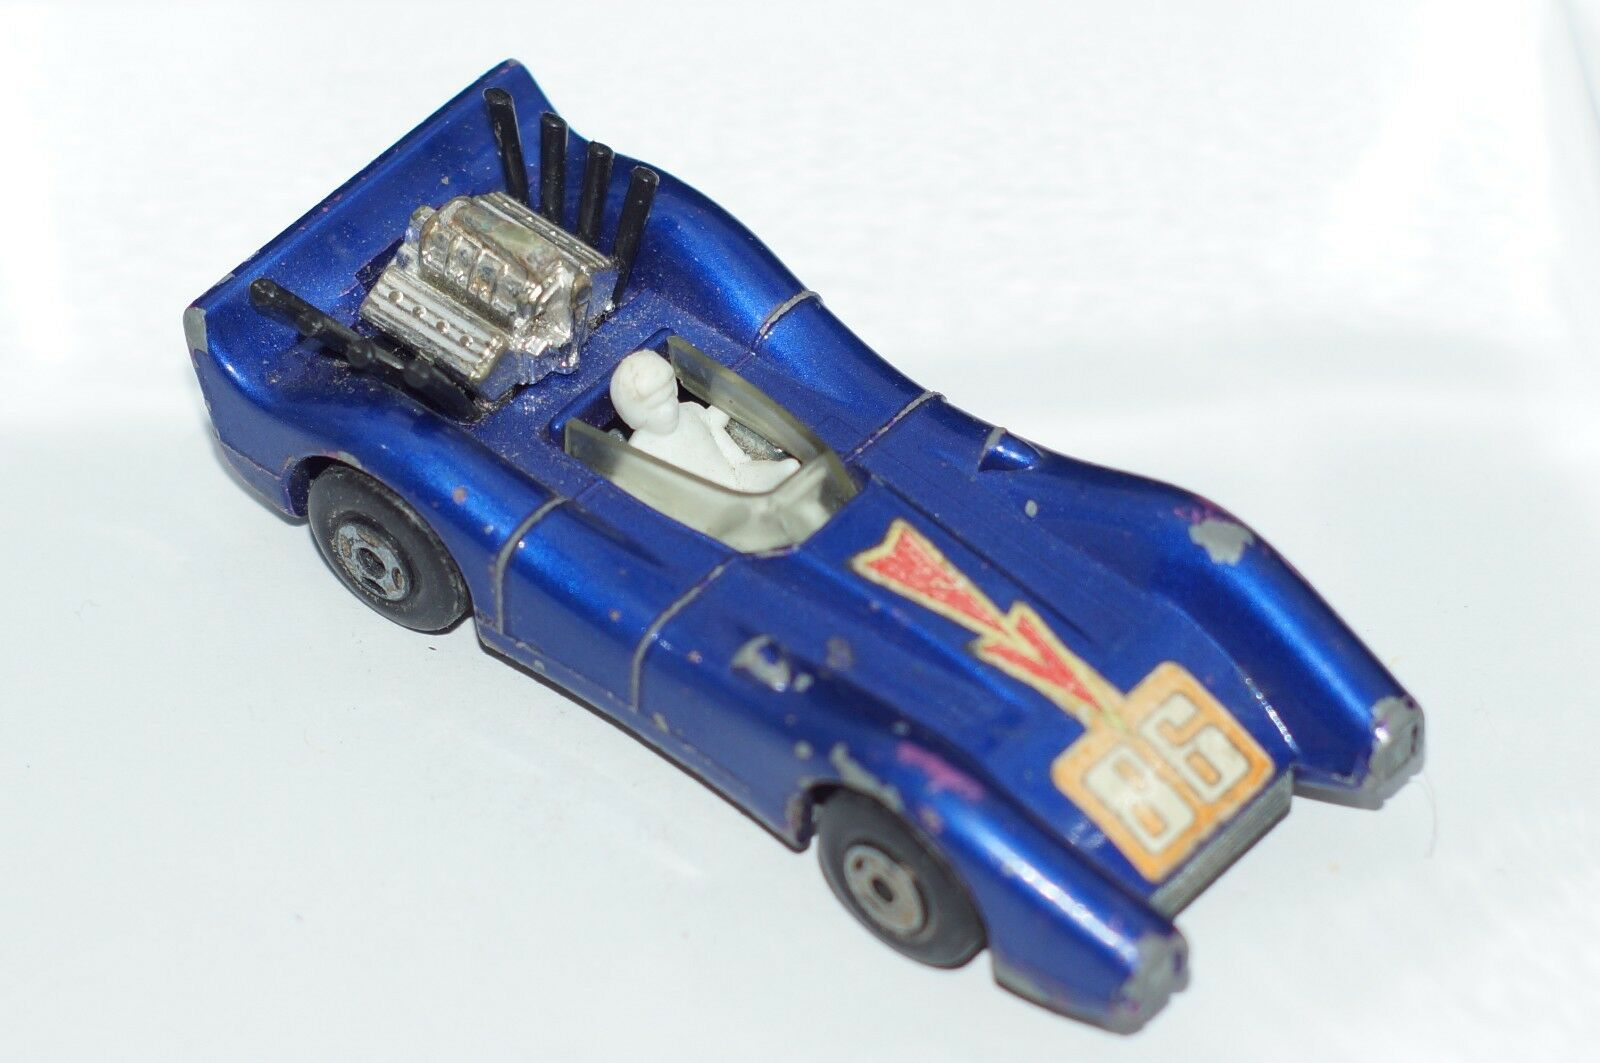 ORIGINAL MatchBox Superfast Blau Shark No 61 - Blau Farbe 86 - Lesney - England